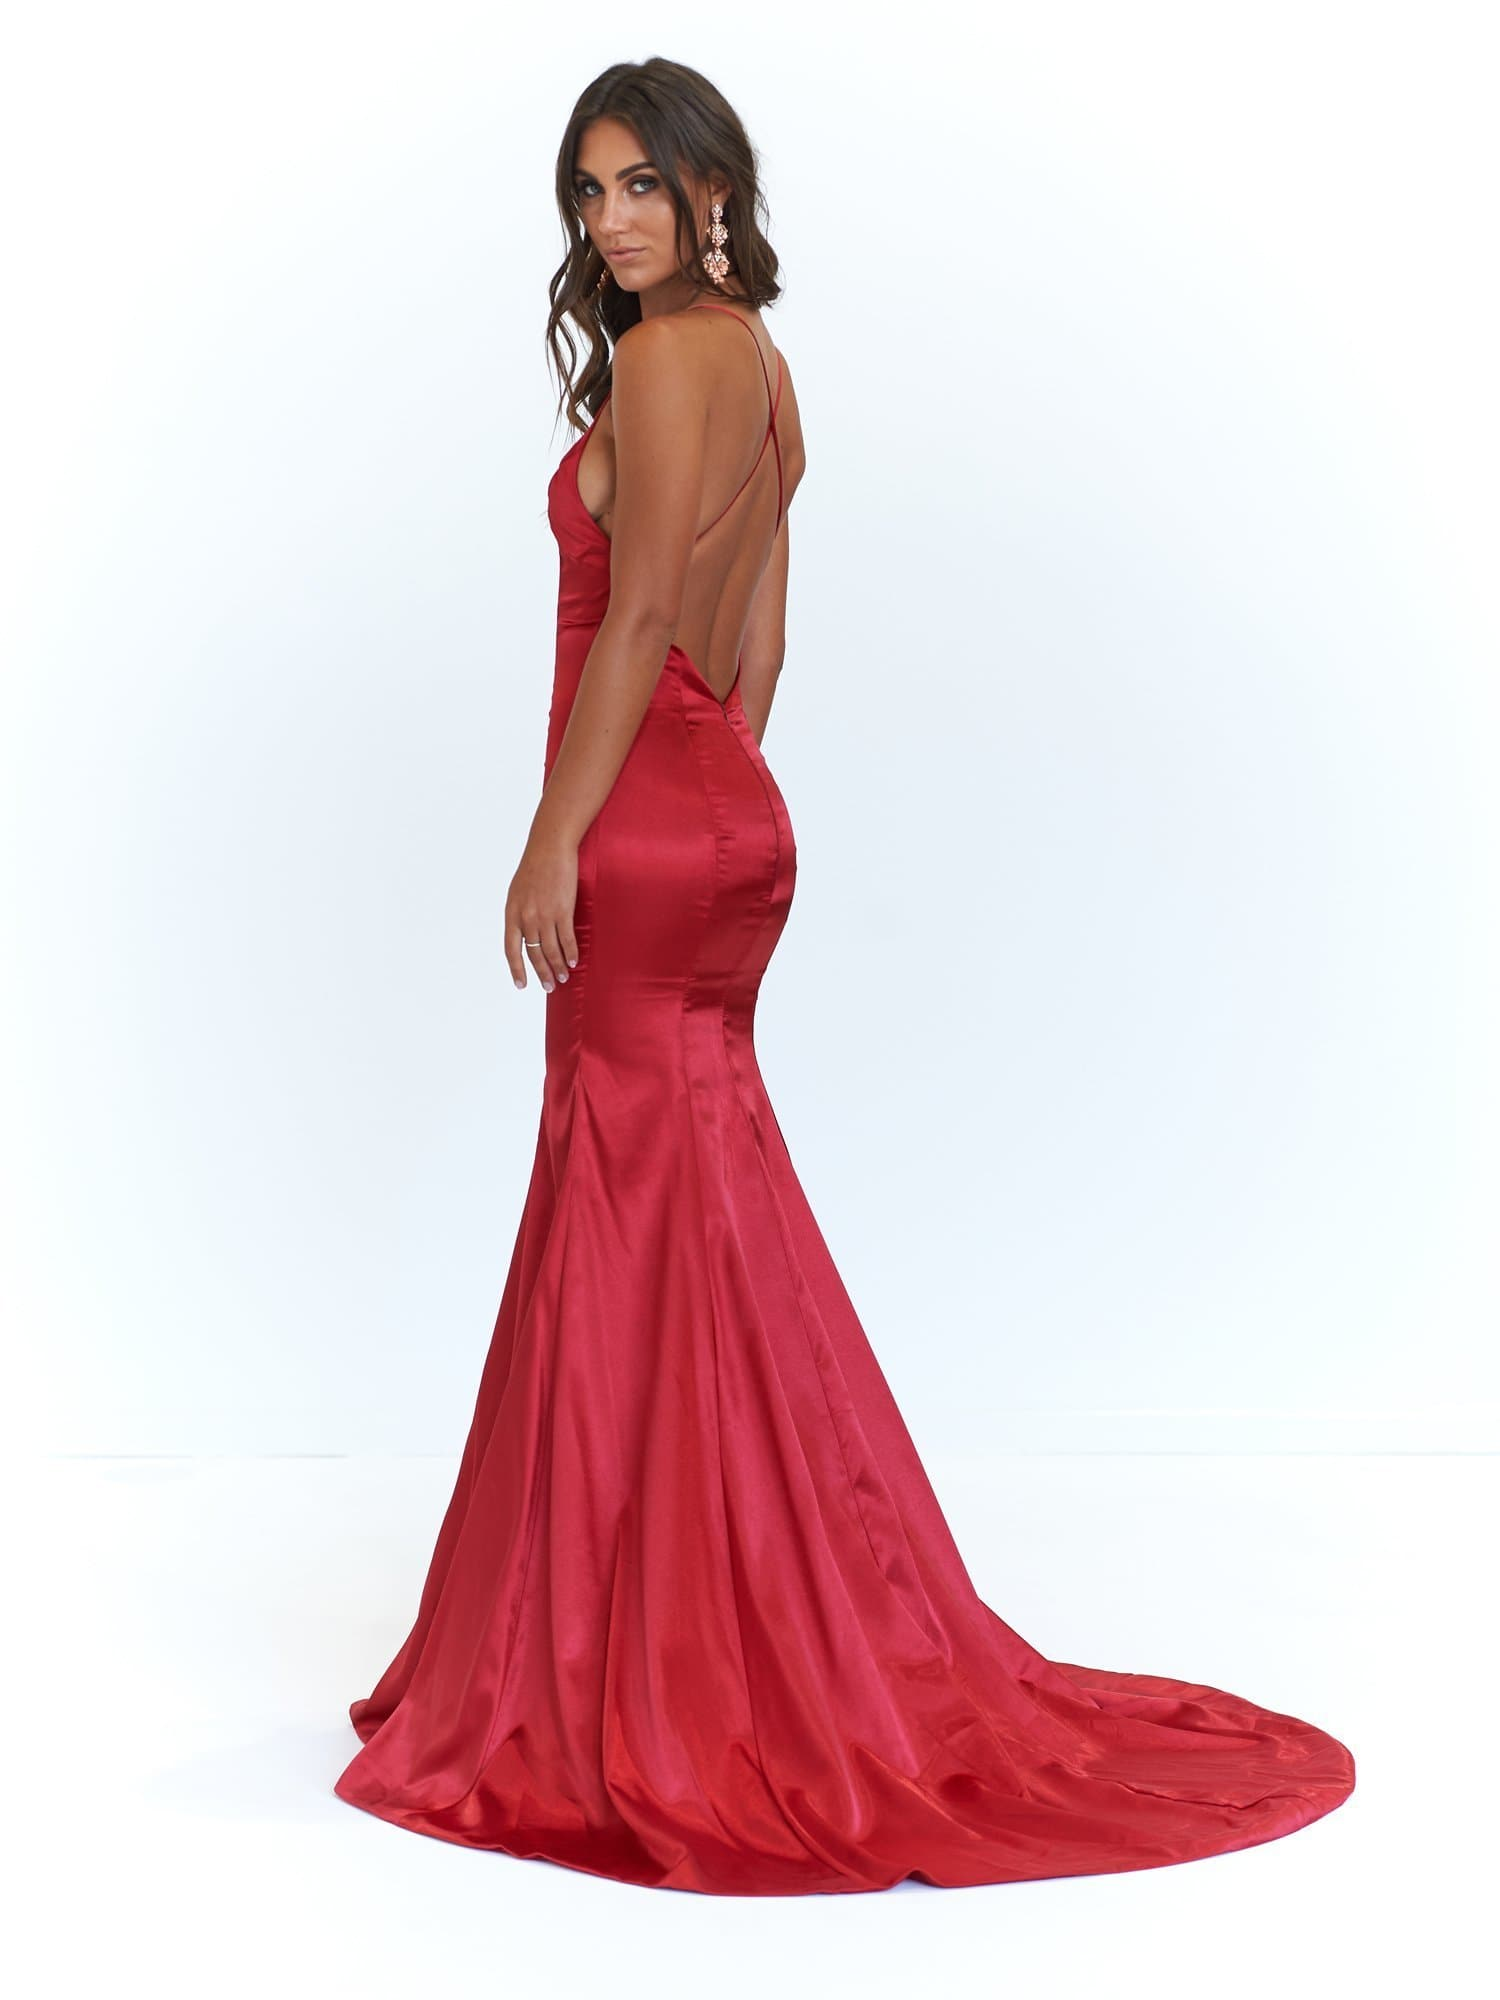 A&N Cadence - Deep Red Satin Gown with Back Detail and Mermaid Train ...